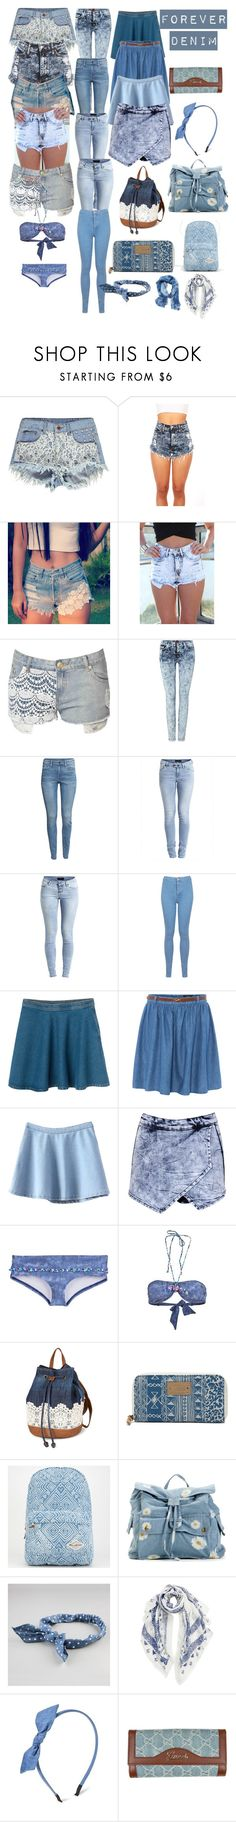 """""""Forever Denim"""" by morgan0624 ❤ liked on Polyvore featuring Boohoo, Levi's, Jane Norman, 7 For All Mankind, H&M, Object Collectors Item, Miss Selfridge, Monki, Therapy and Banana Moon"""